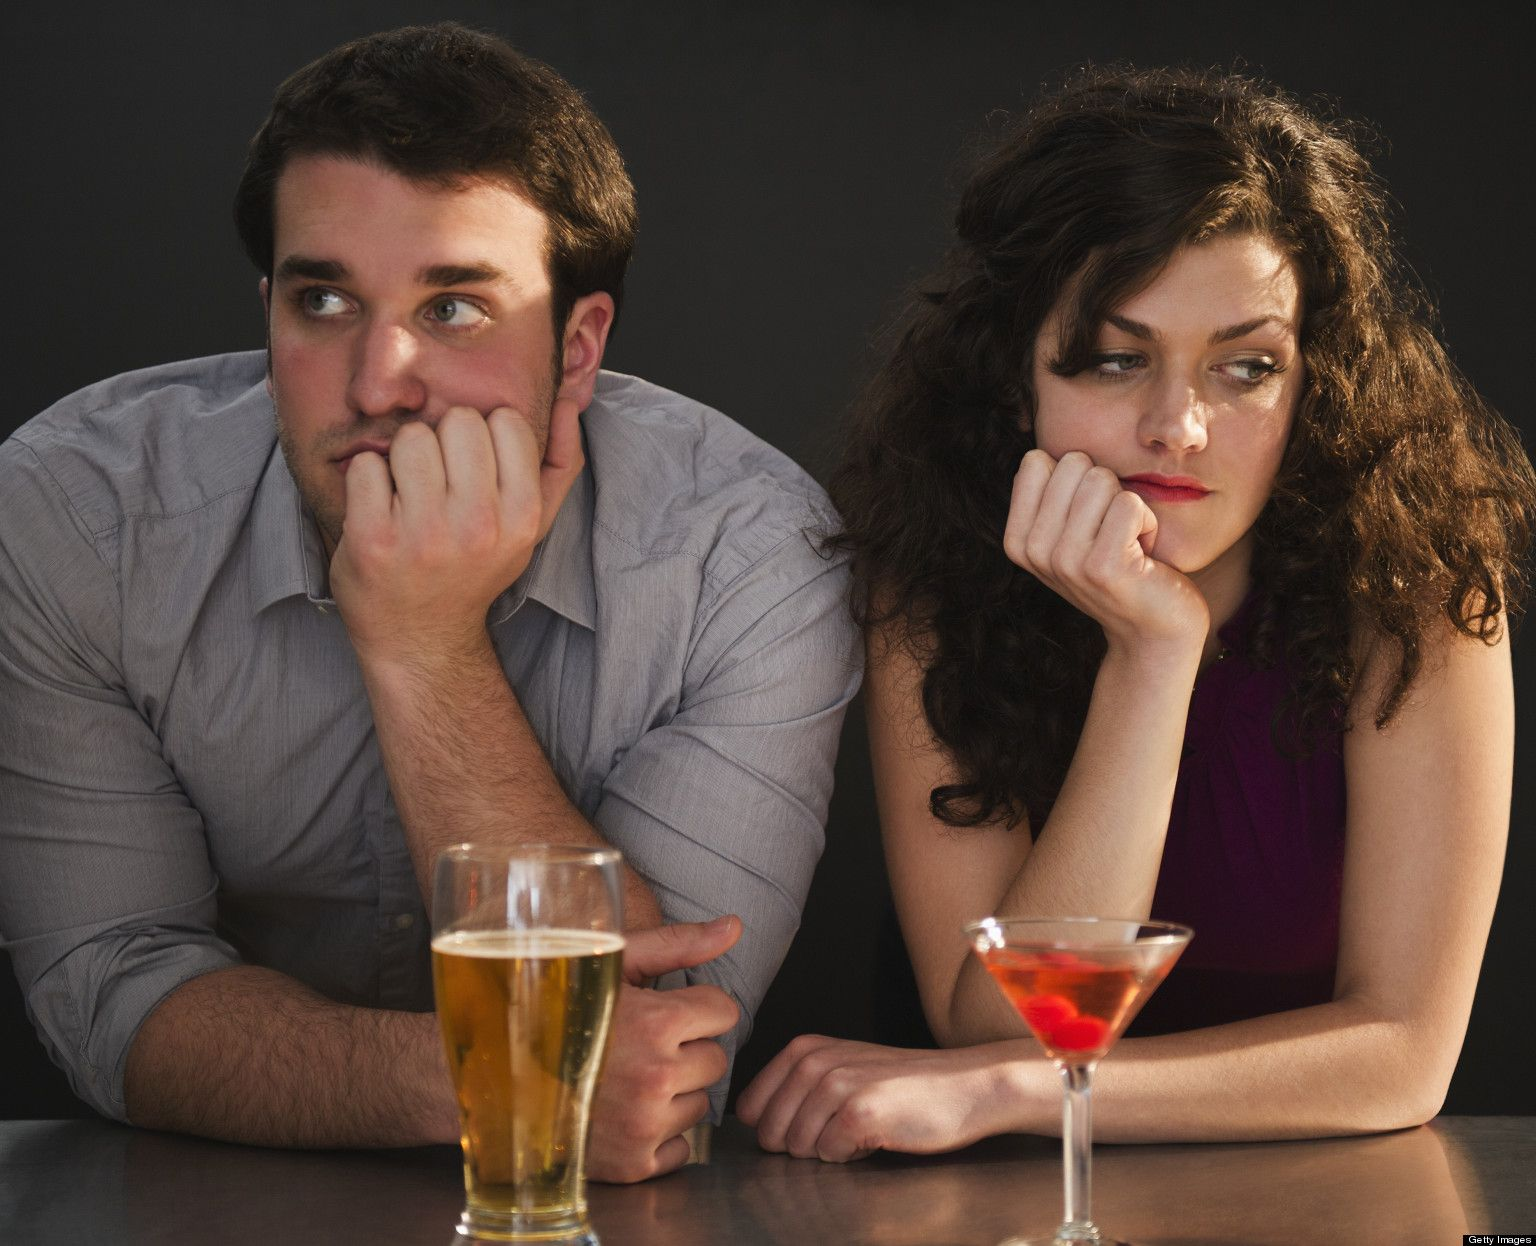 Difficulty dating after divorce